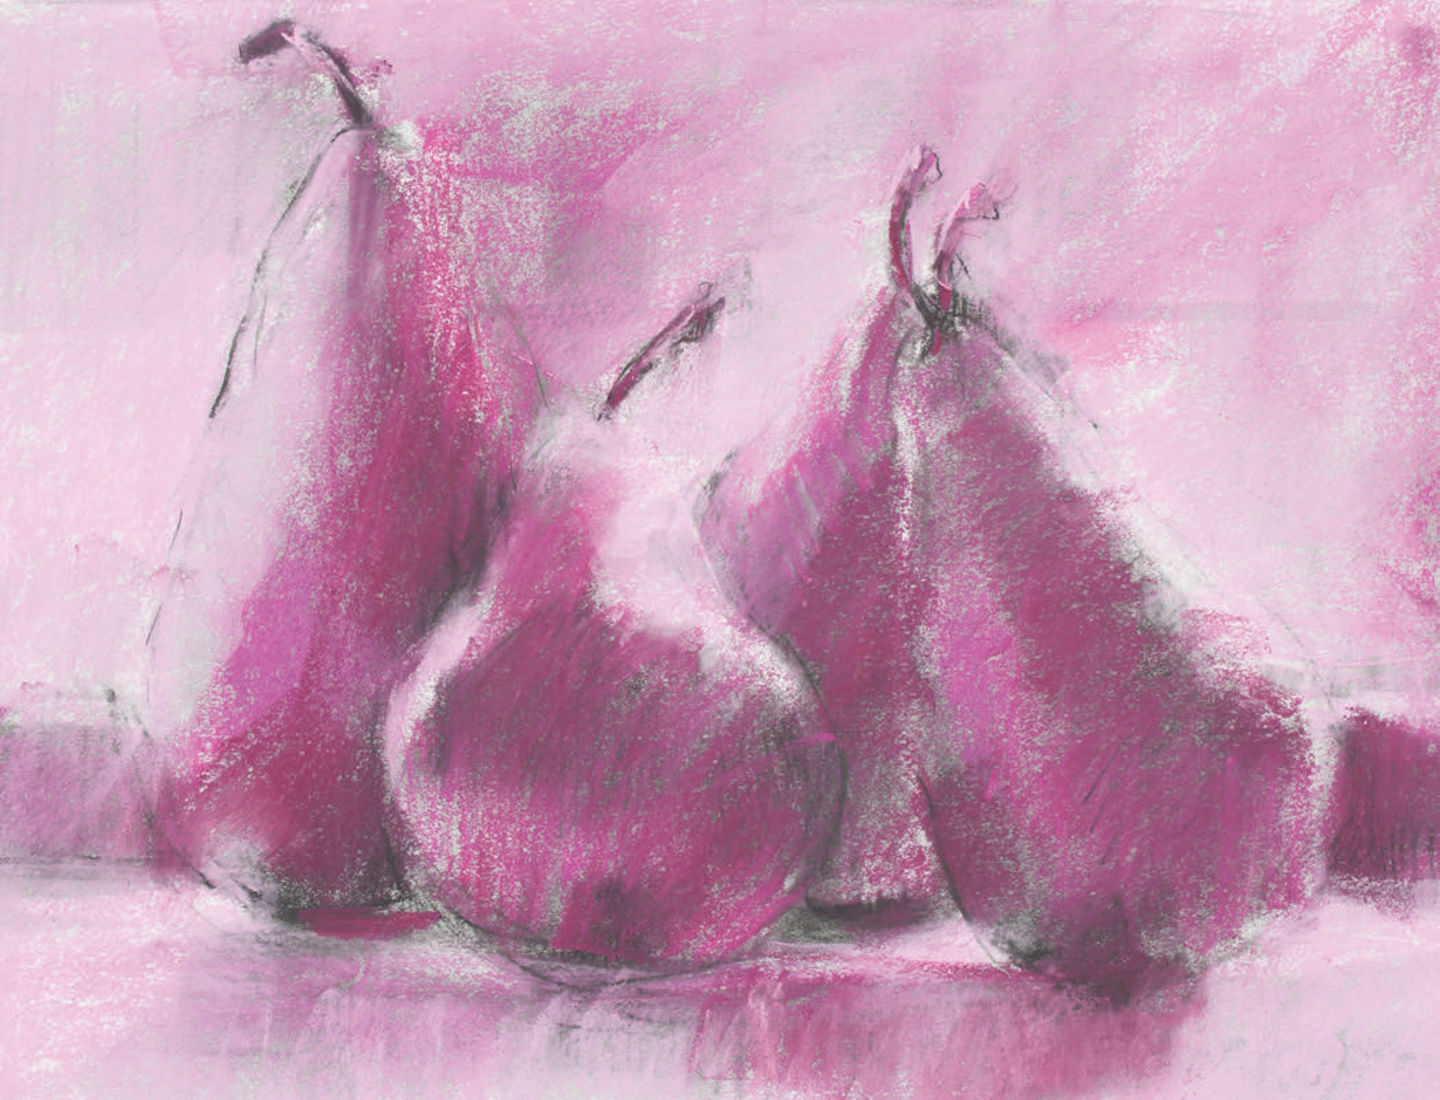 Pastel prompt using monochrome pastels by Dawn Emerson, brought to you by Artists Network